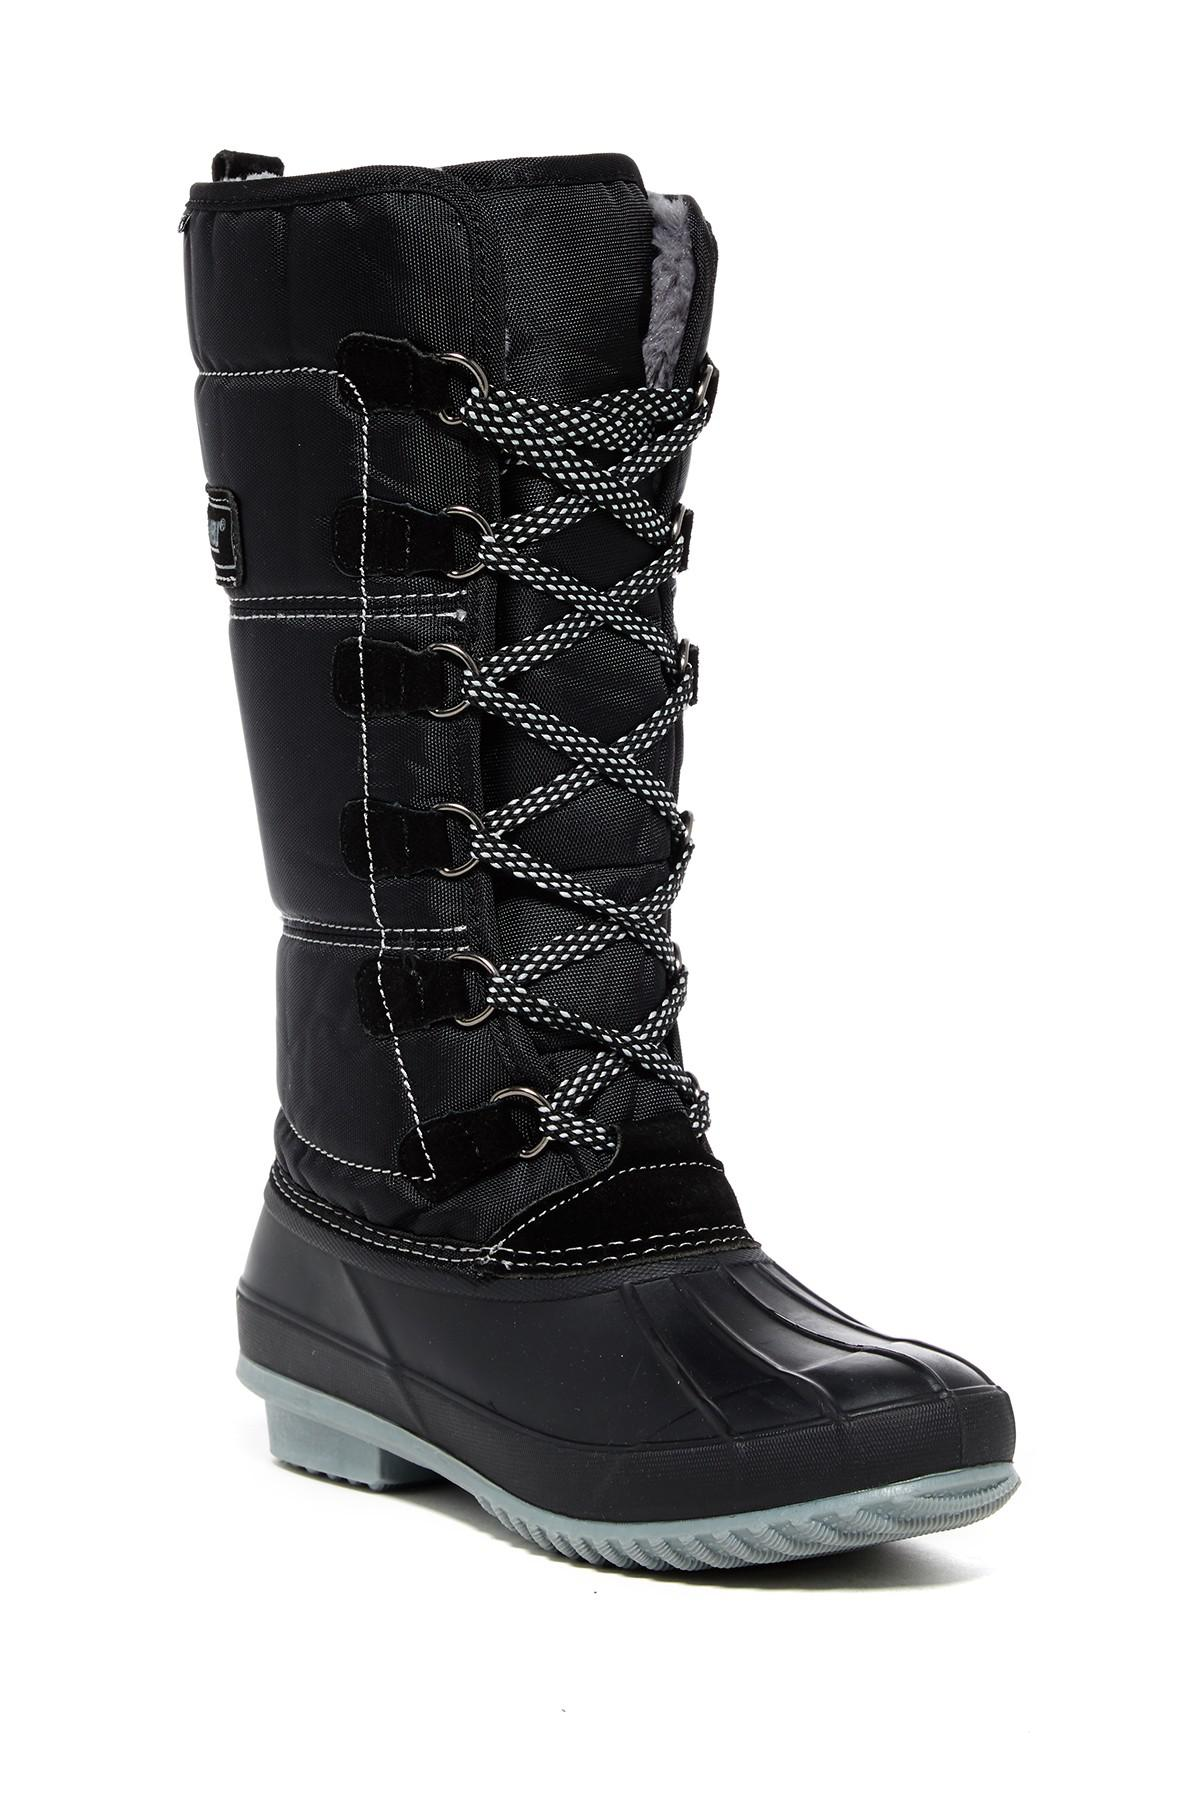 Khombu Canyon Waterproof Faux Fur Lined Boot In Black Lyst